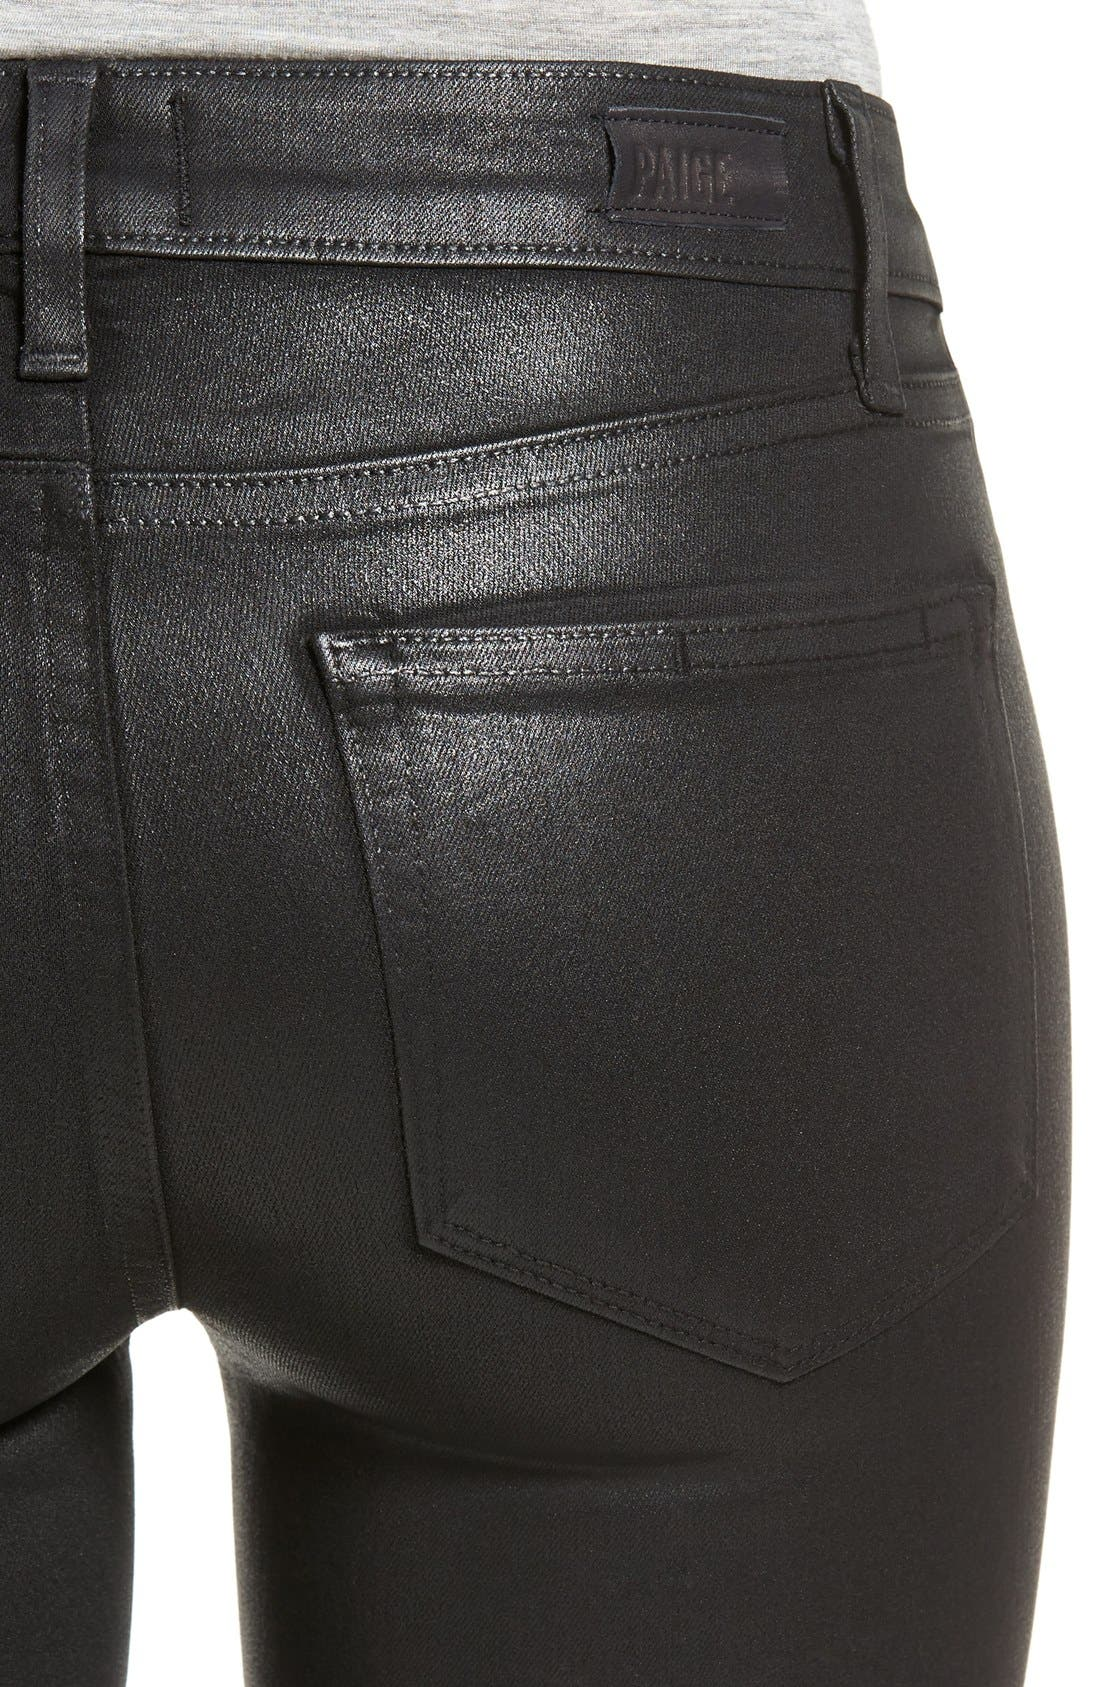 Alternate Image 4  - PAIGE Verdugo Coated Ankle Skinny Jeans (Black Fog Luxe Coated) (Nordstrom Exclusive)